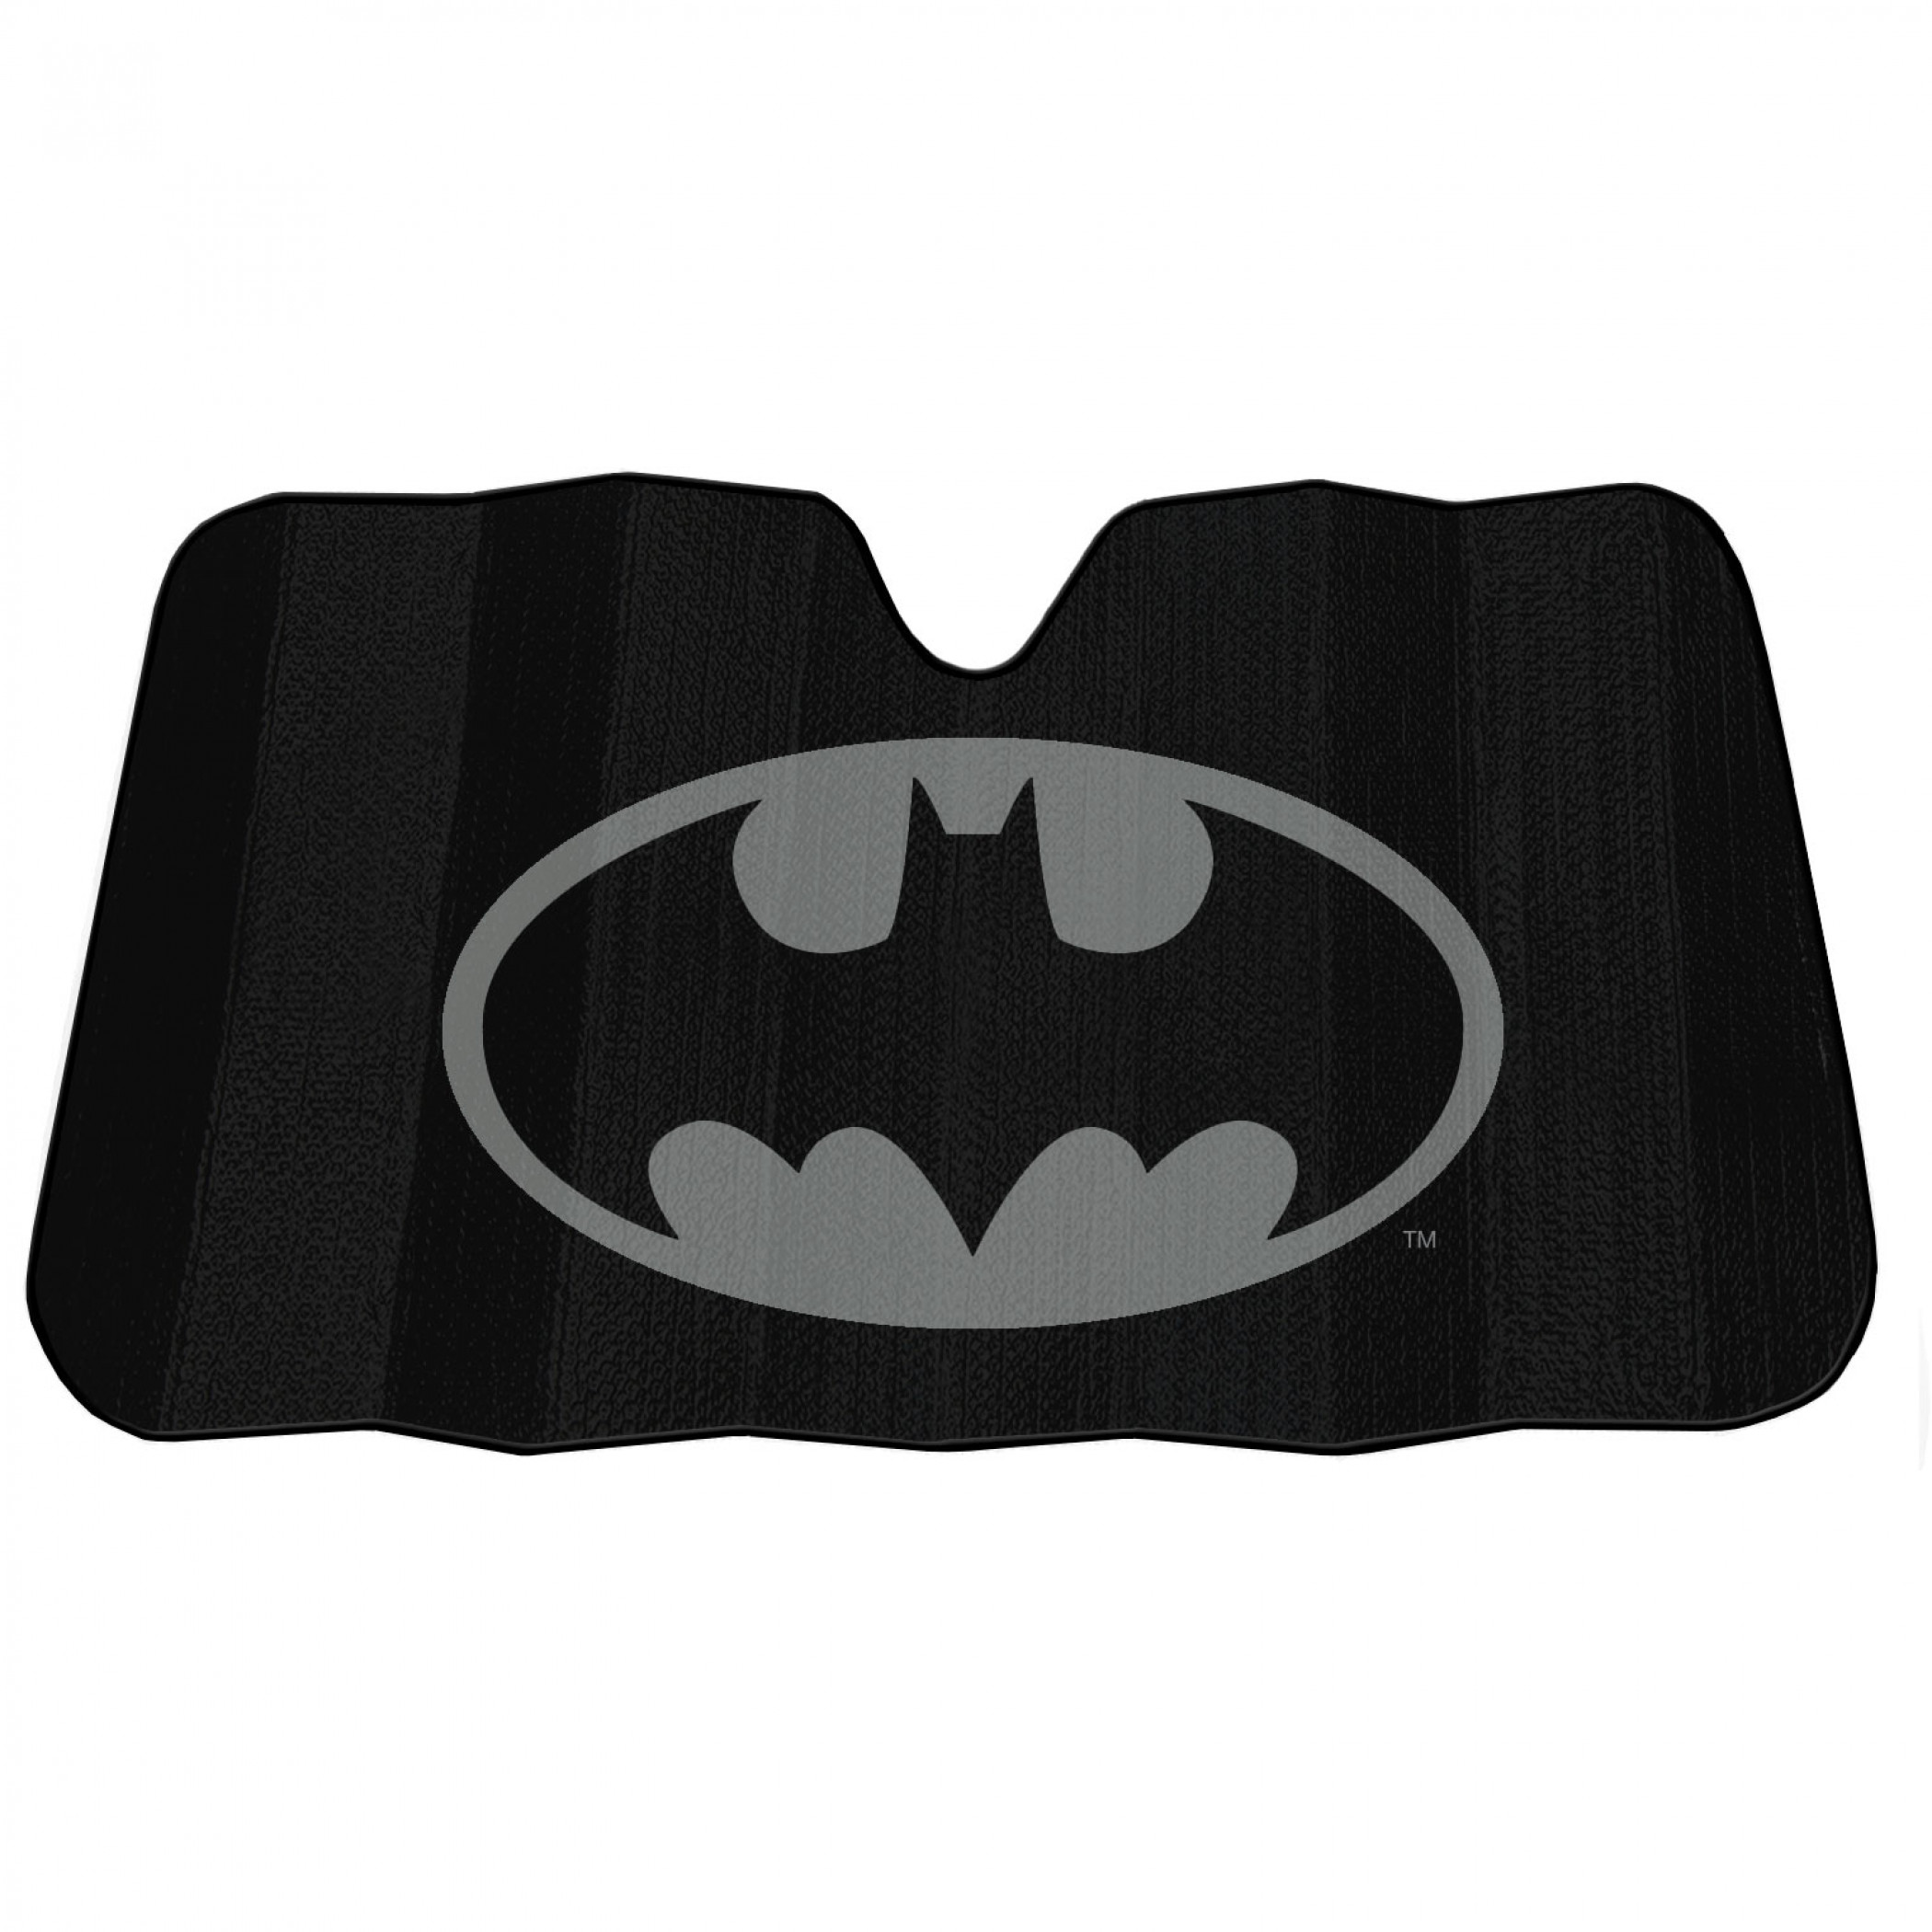 Batman Windshield Car Visor Sunshade